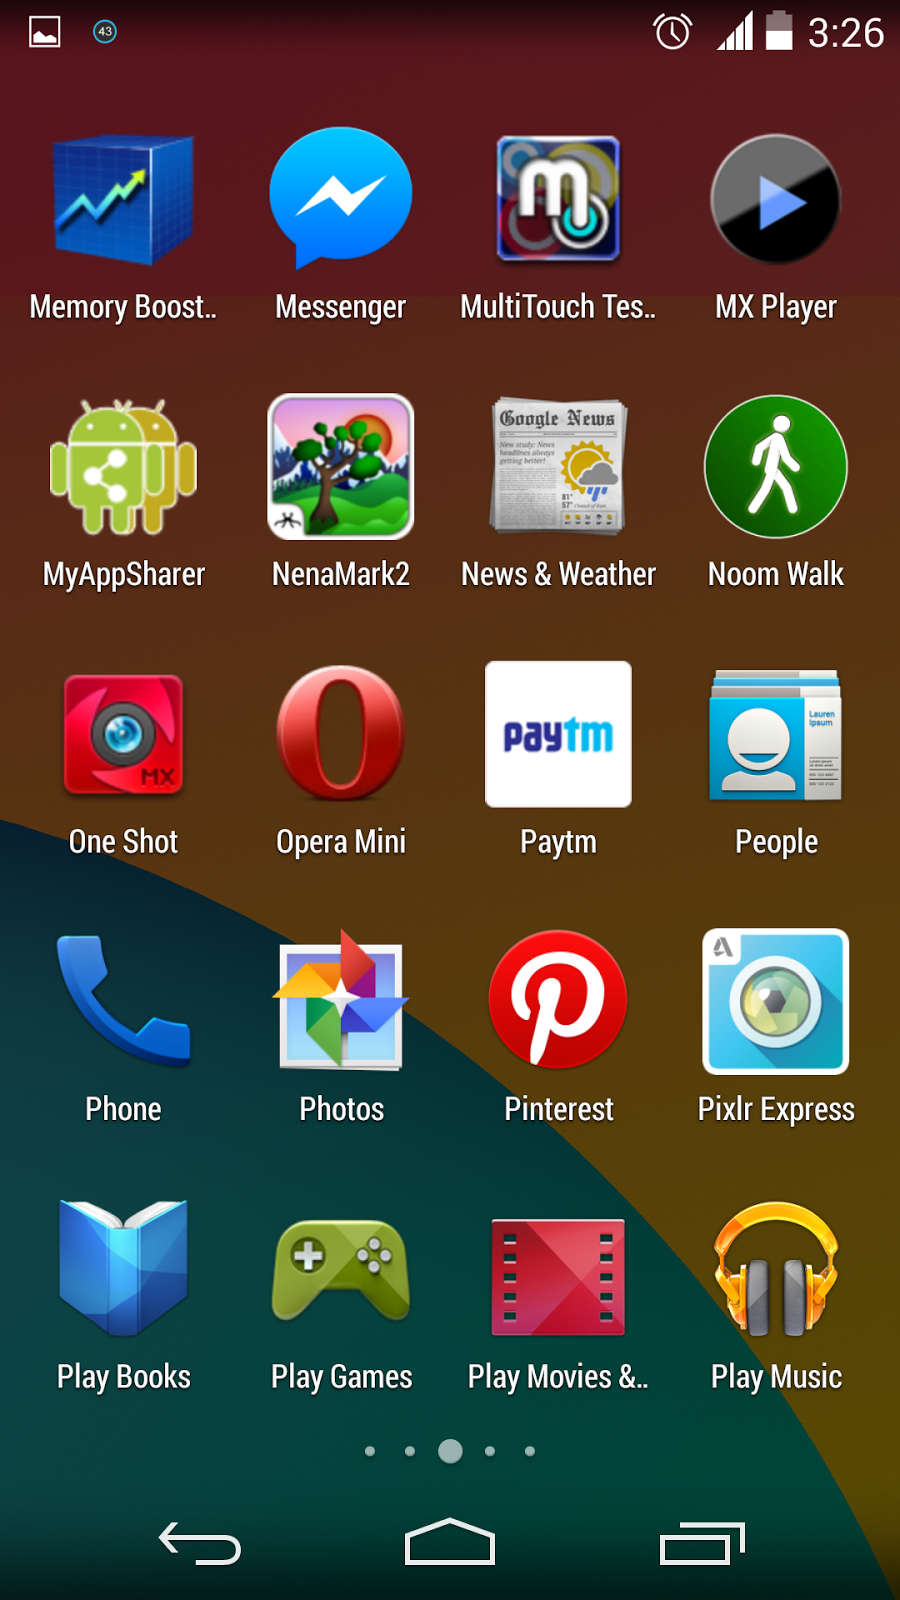 Google+LG+Nexus+5+Android+KitKat+Review+Handson+Detailed+Benchmark++%252817%2529.png